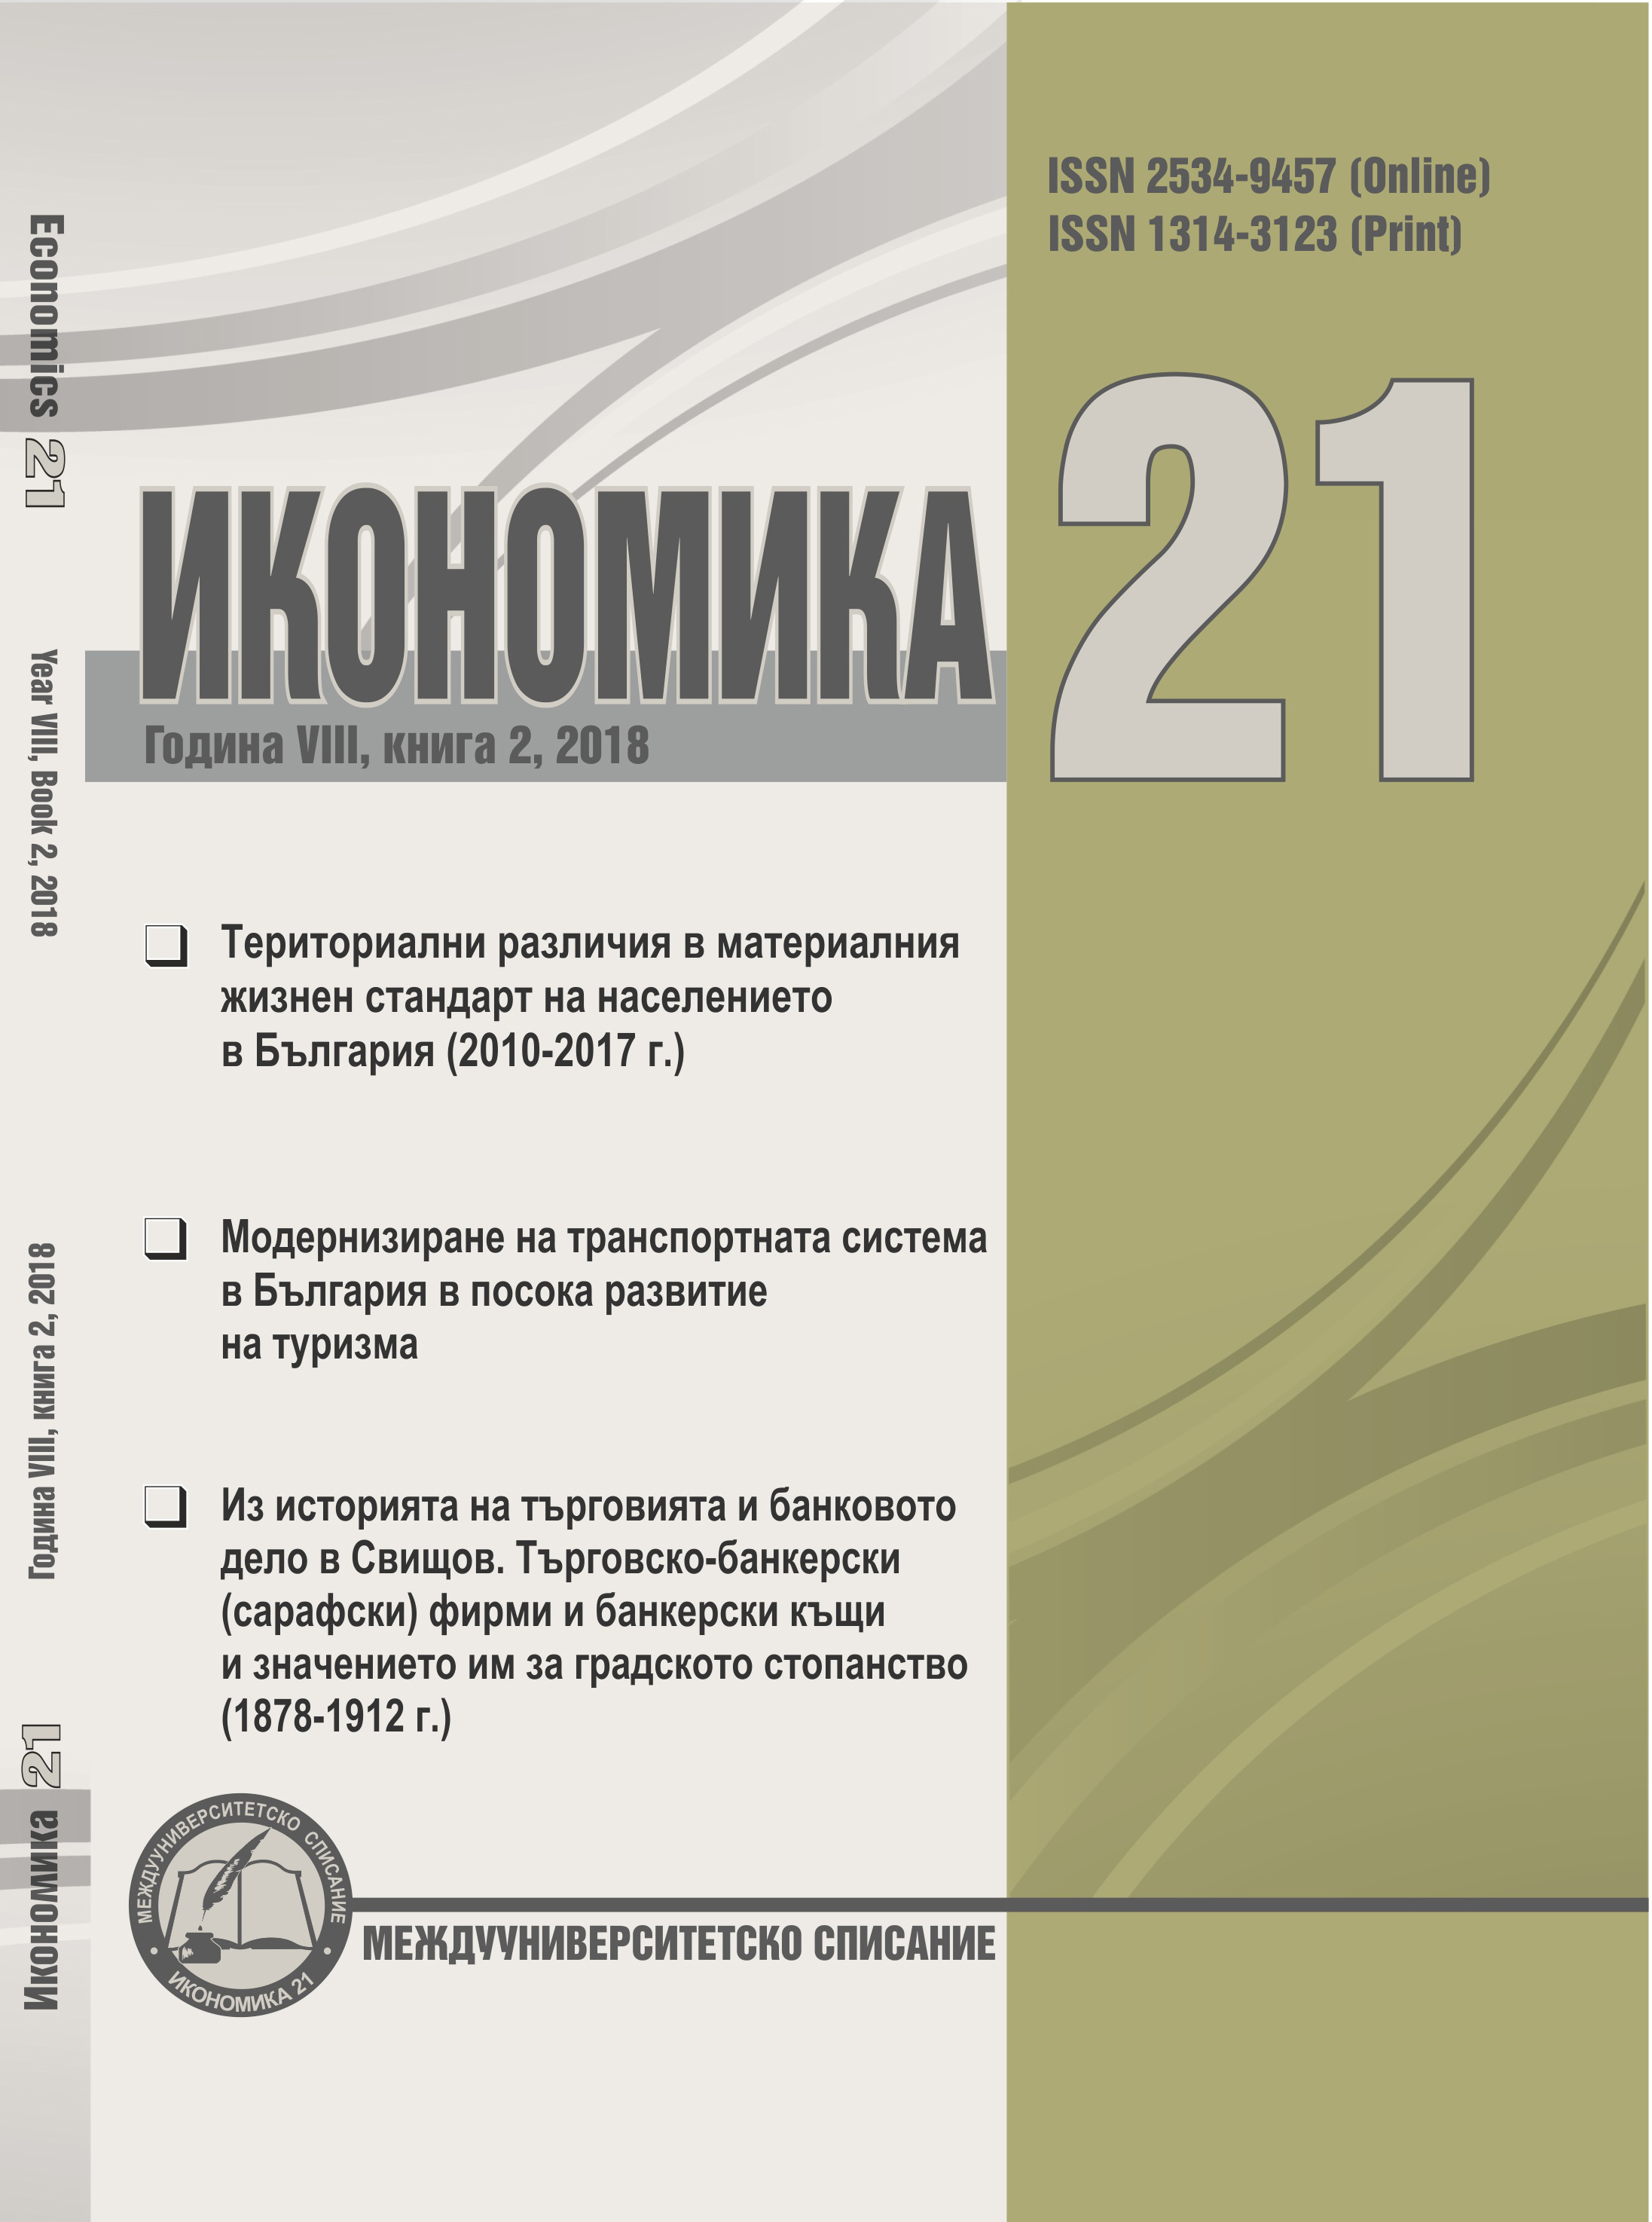 TERRITORIAL DIFFERENCES BETWEEN THE LIVING STANDARDS IN BULGARIAN REGIONS AND DISTRICTS (2010–2017) Cover Image